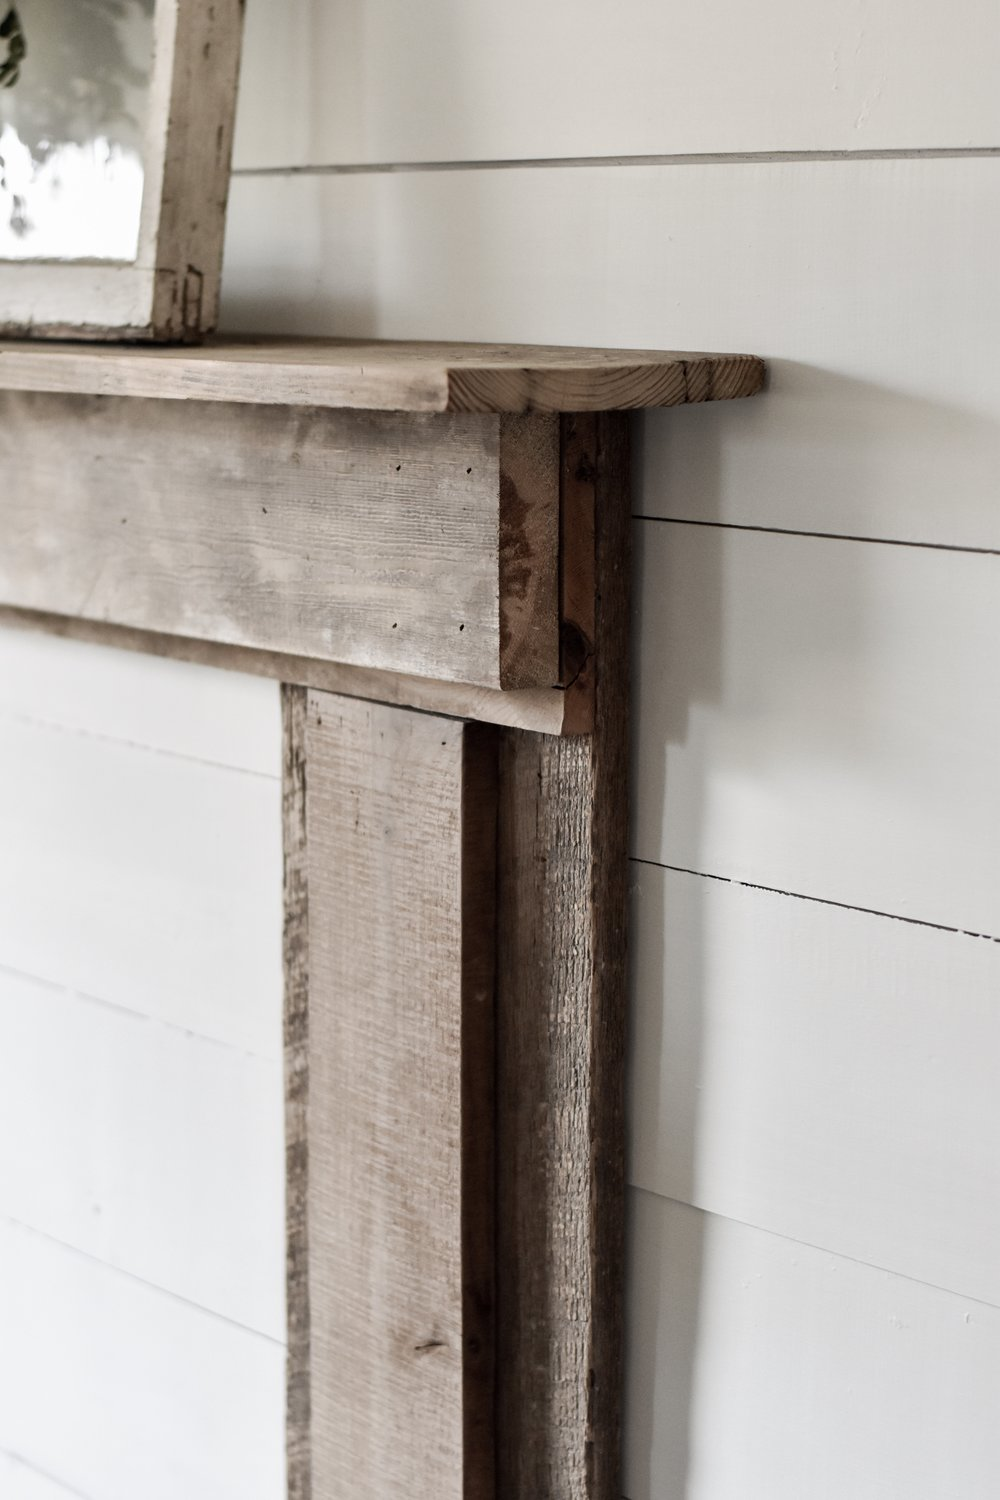 Fake rustic farmhouse faux mantel made for cheap by using barn wood.JPG